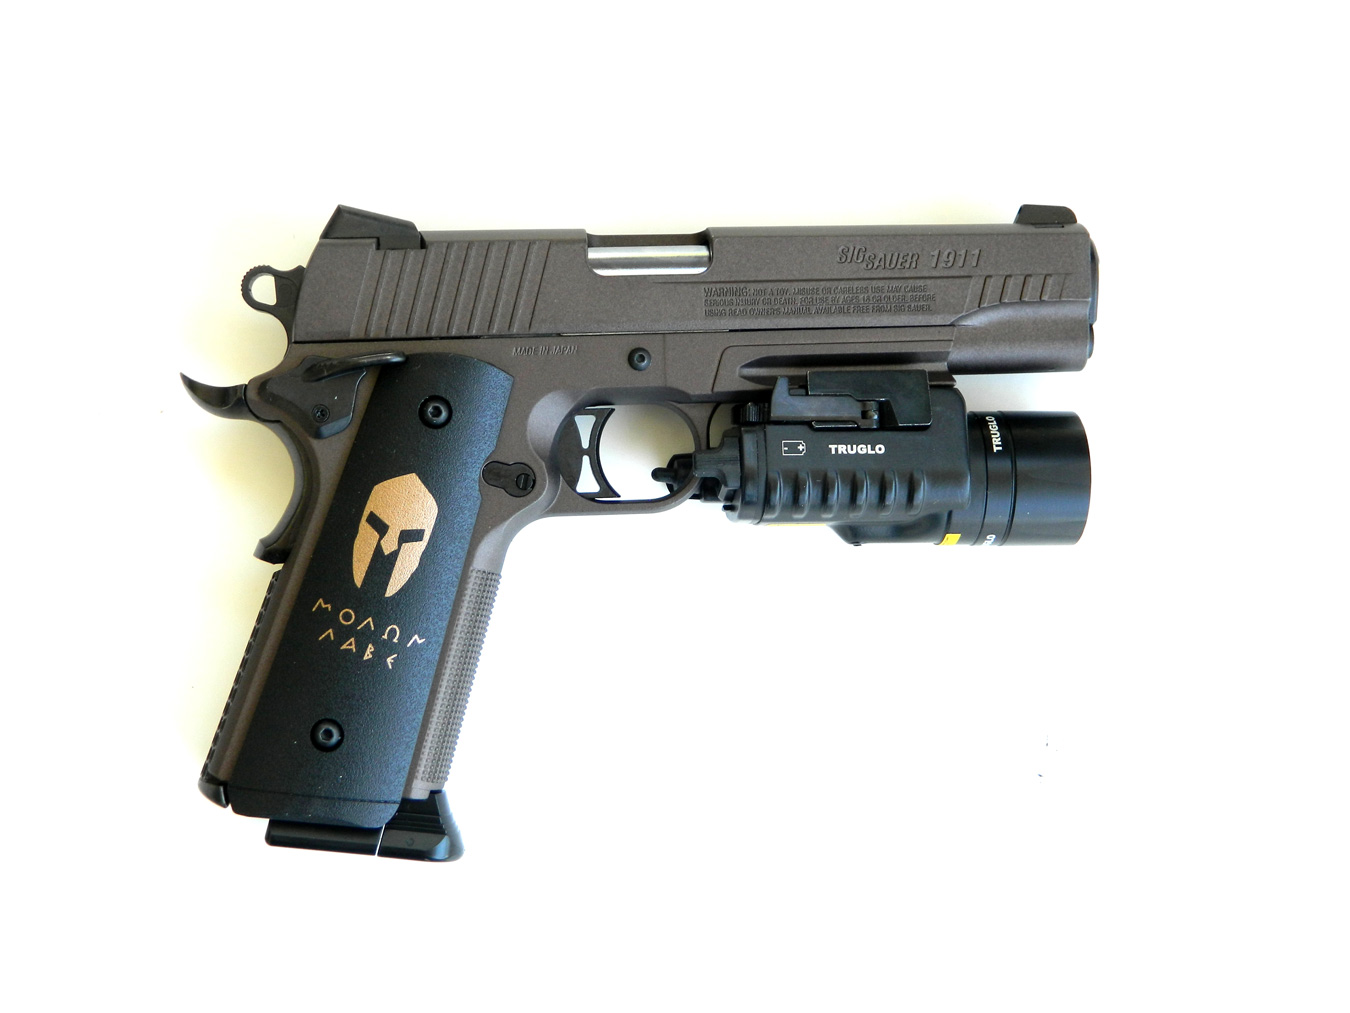 SIG Sauer Spartan Airgun with TruGlo sights